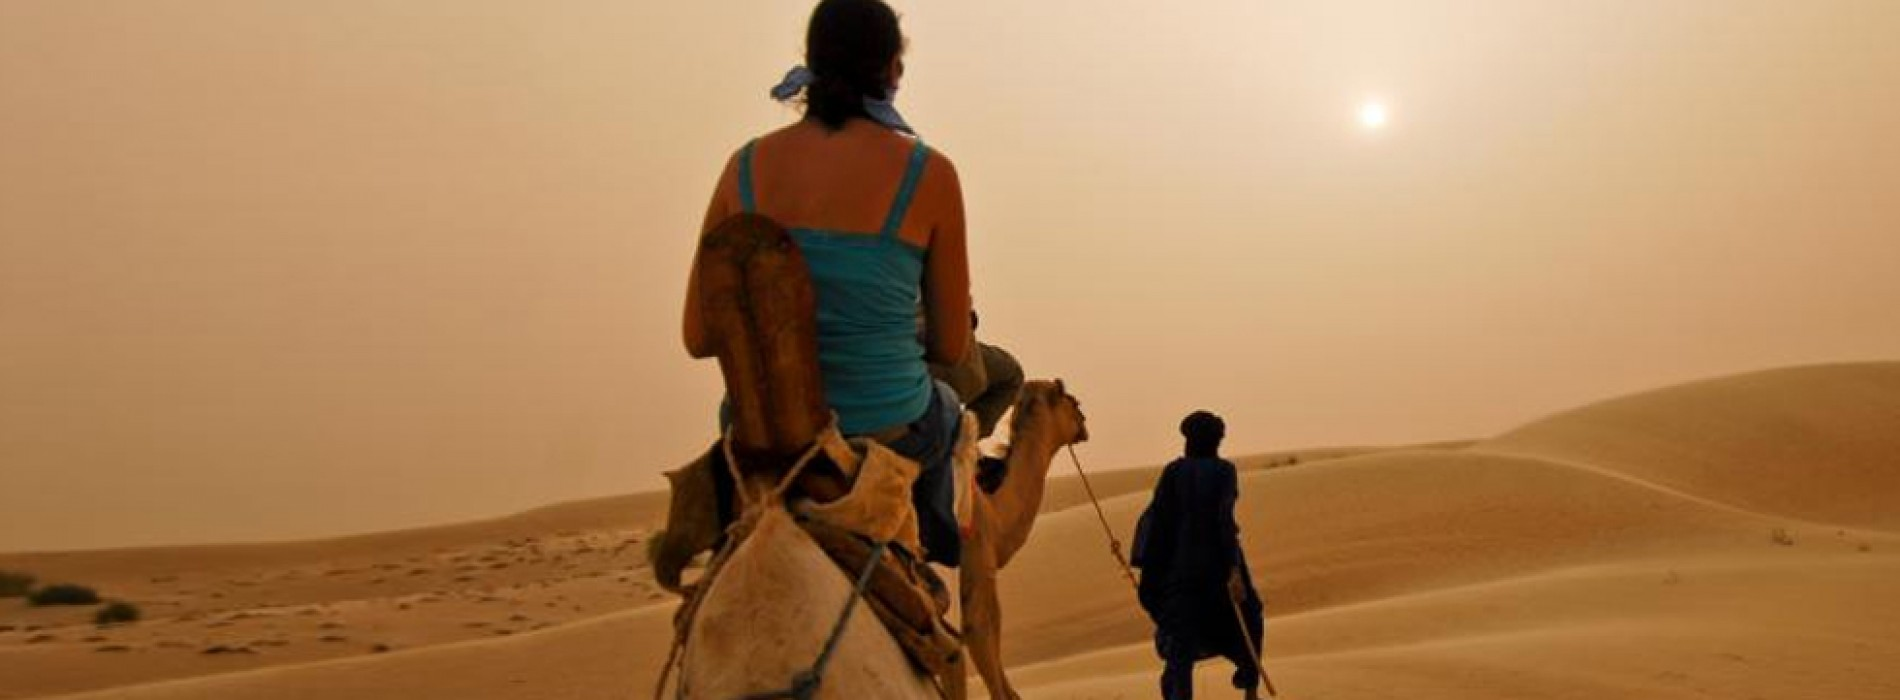 Tourism demand remains strong despite challenges says UNWTO